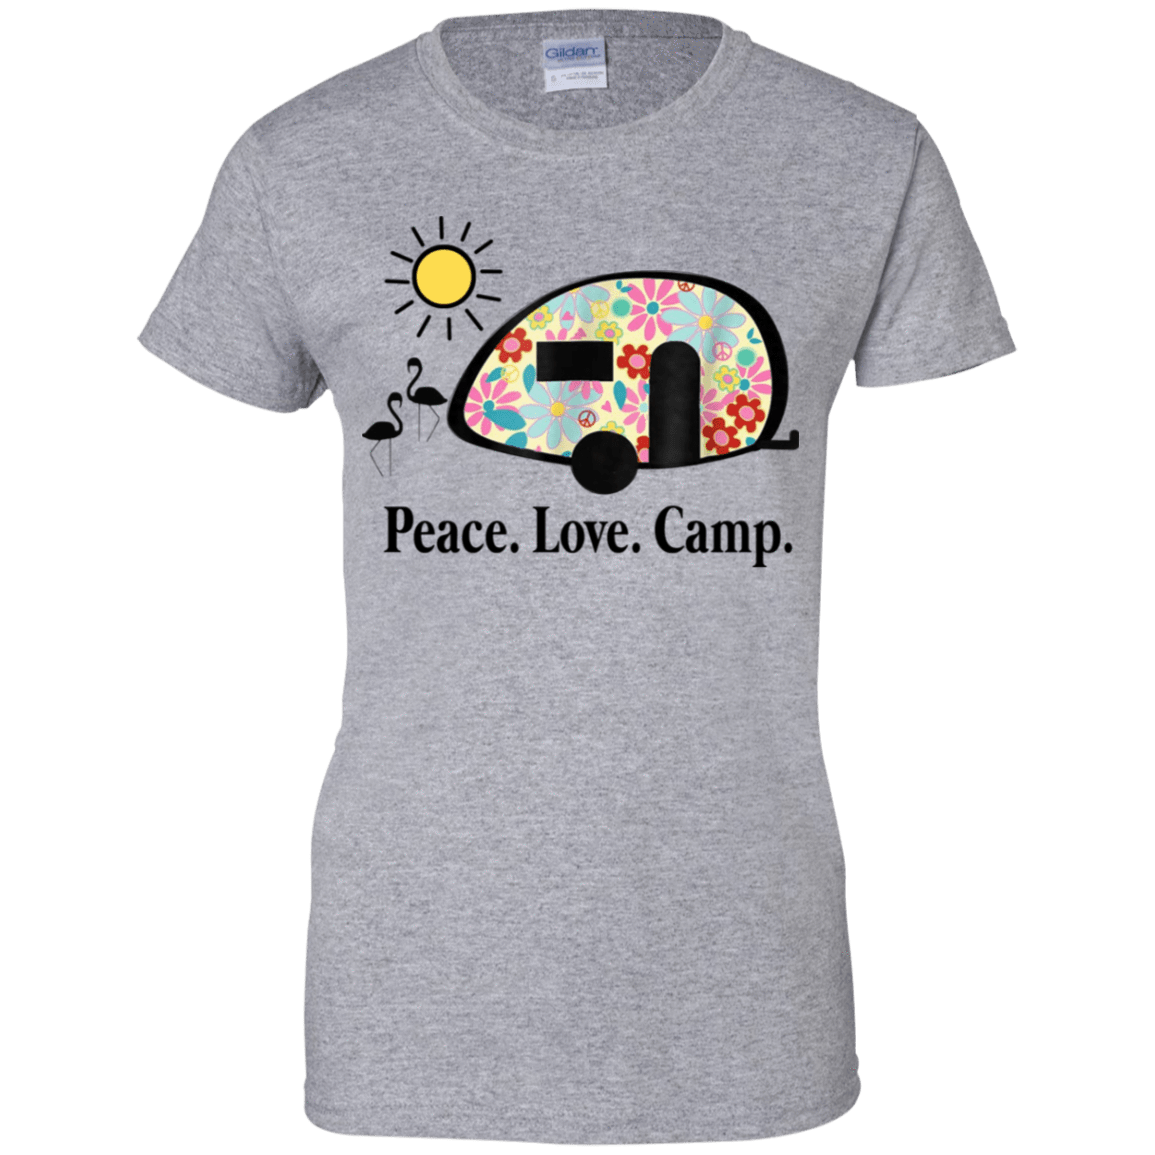 Peace. Love. Camp. Camping 939-9265-73889466-44821 - Tee Ript